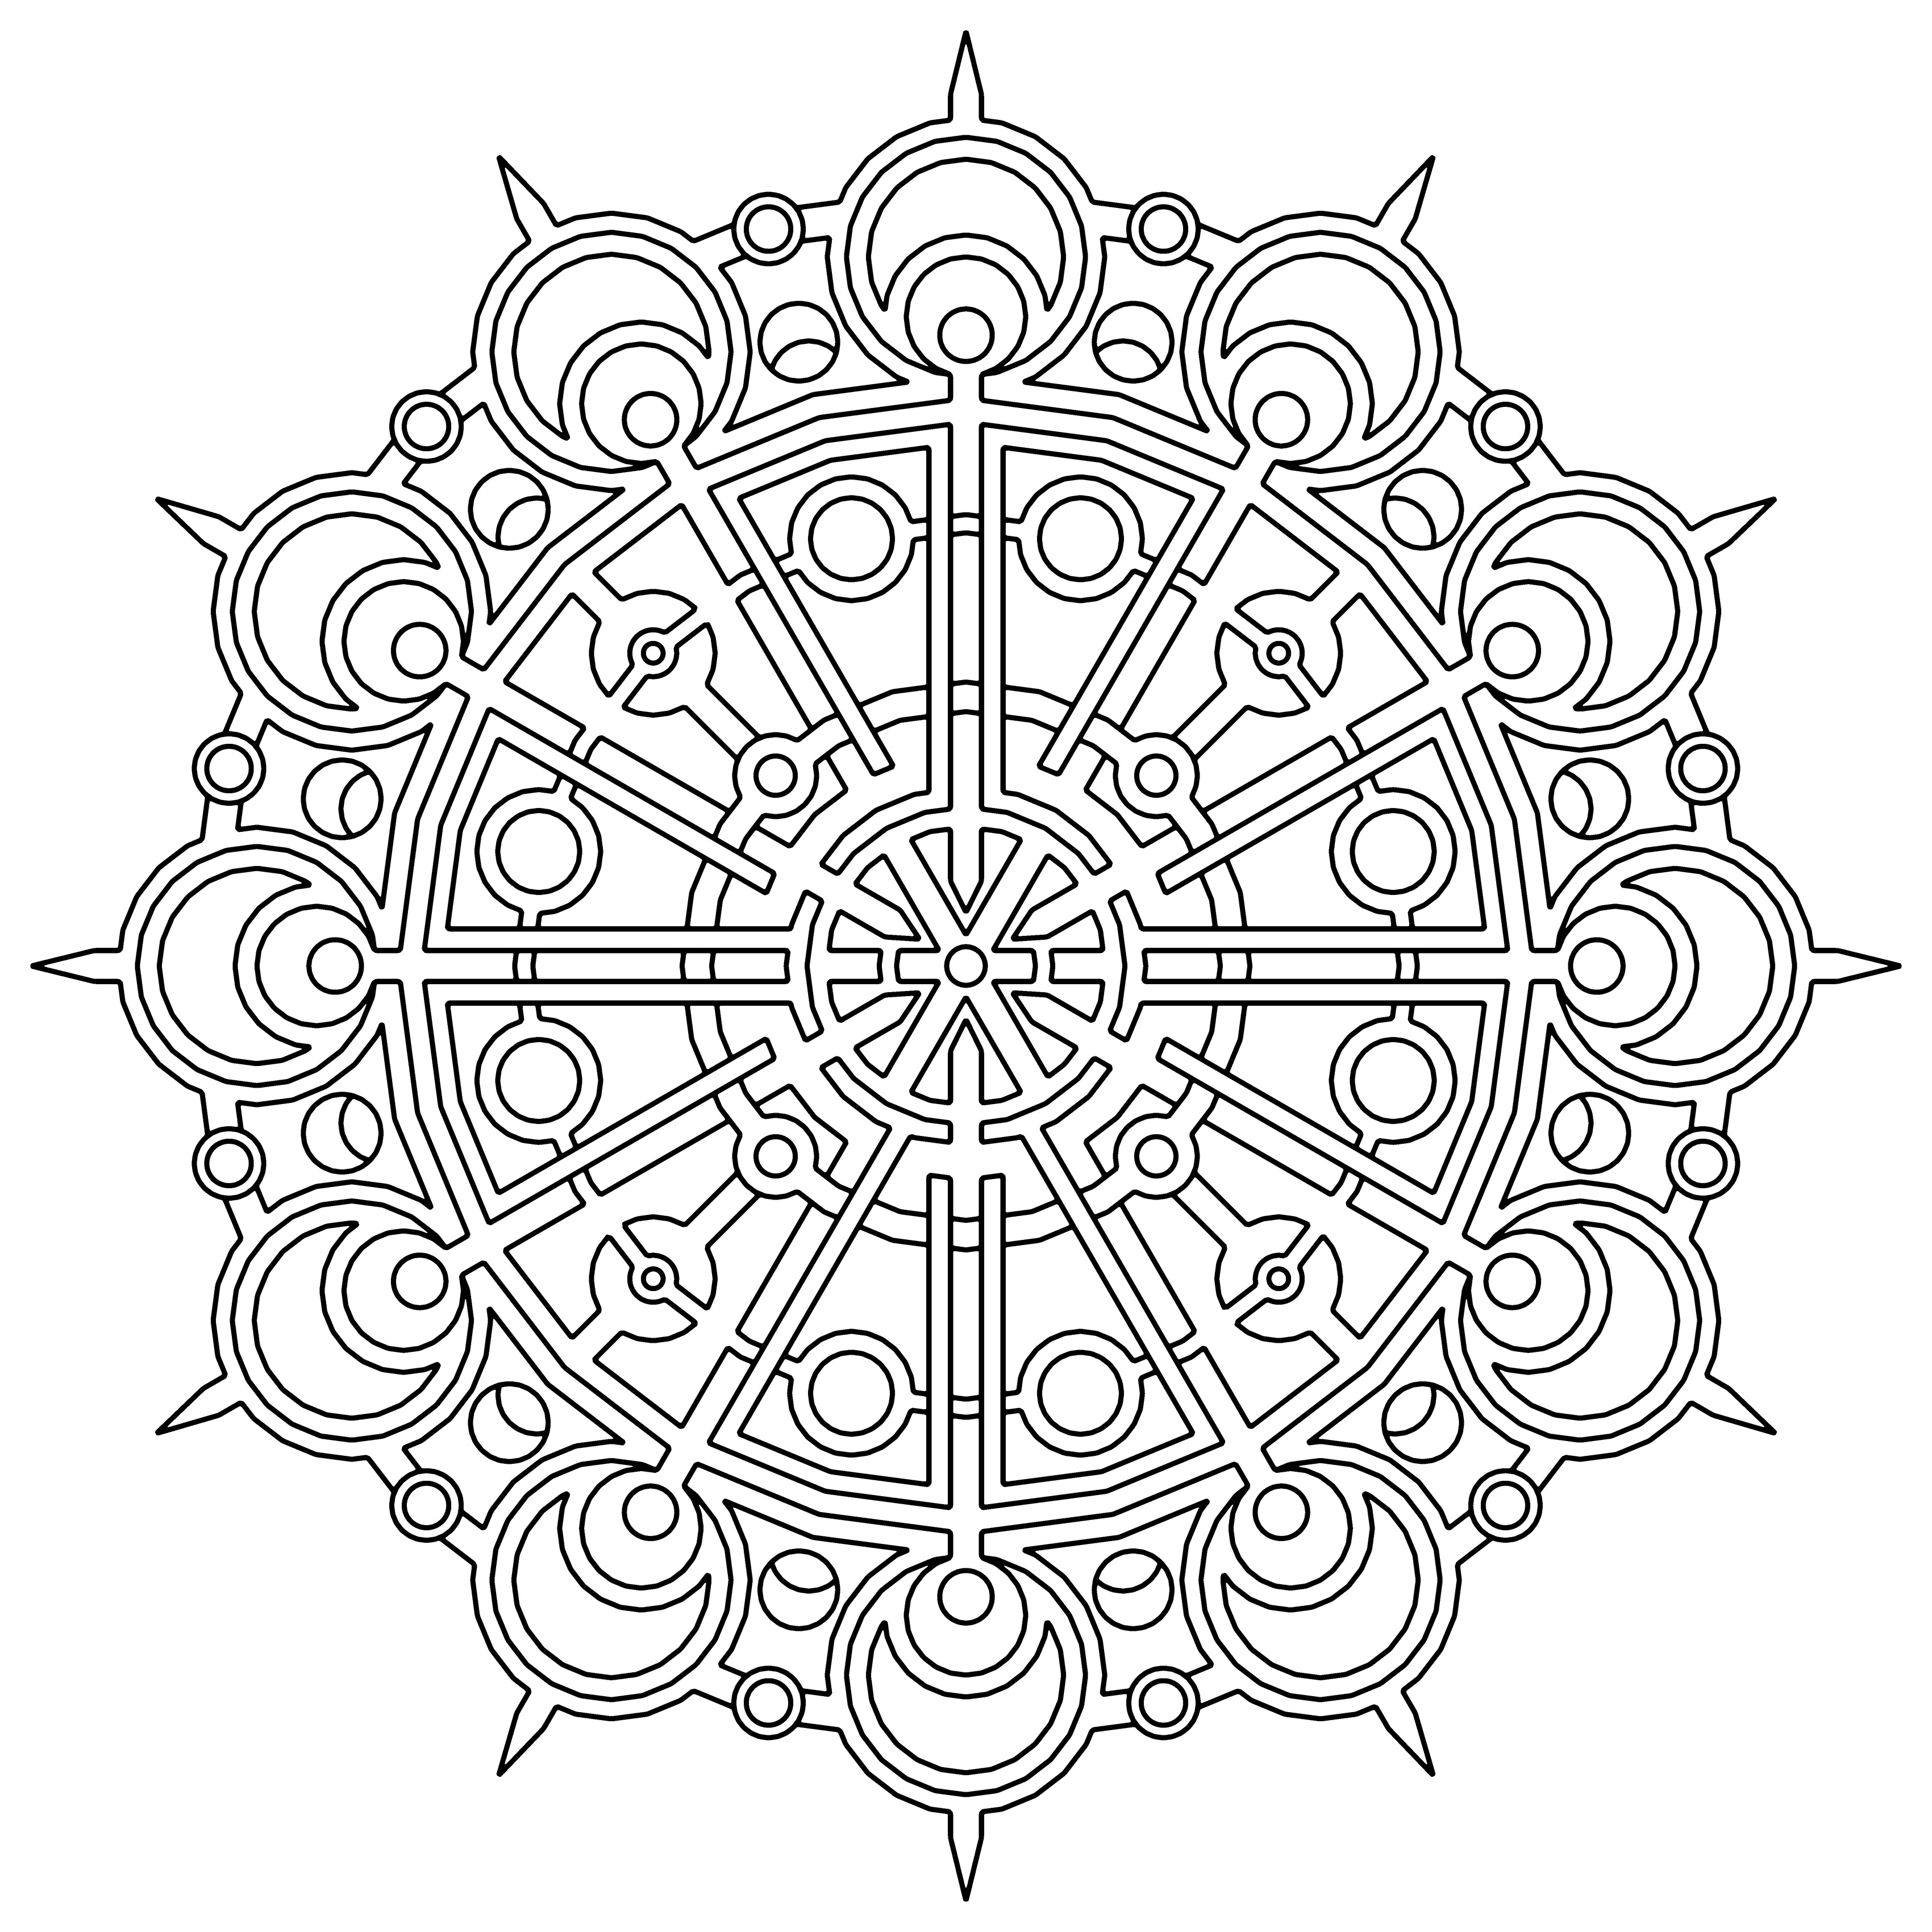 printable coloring designs free printable geometric coloring pages for kids coloring designs printable